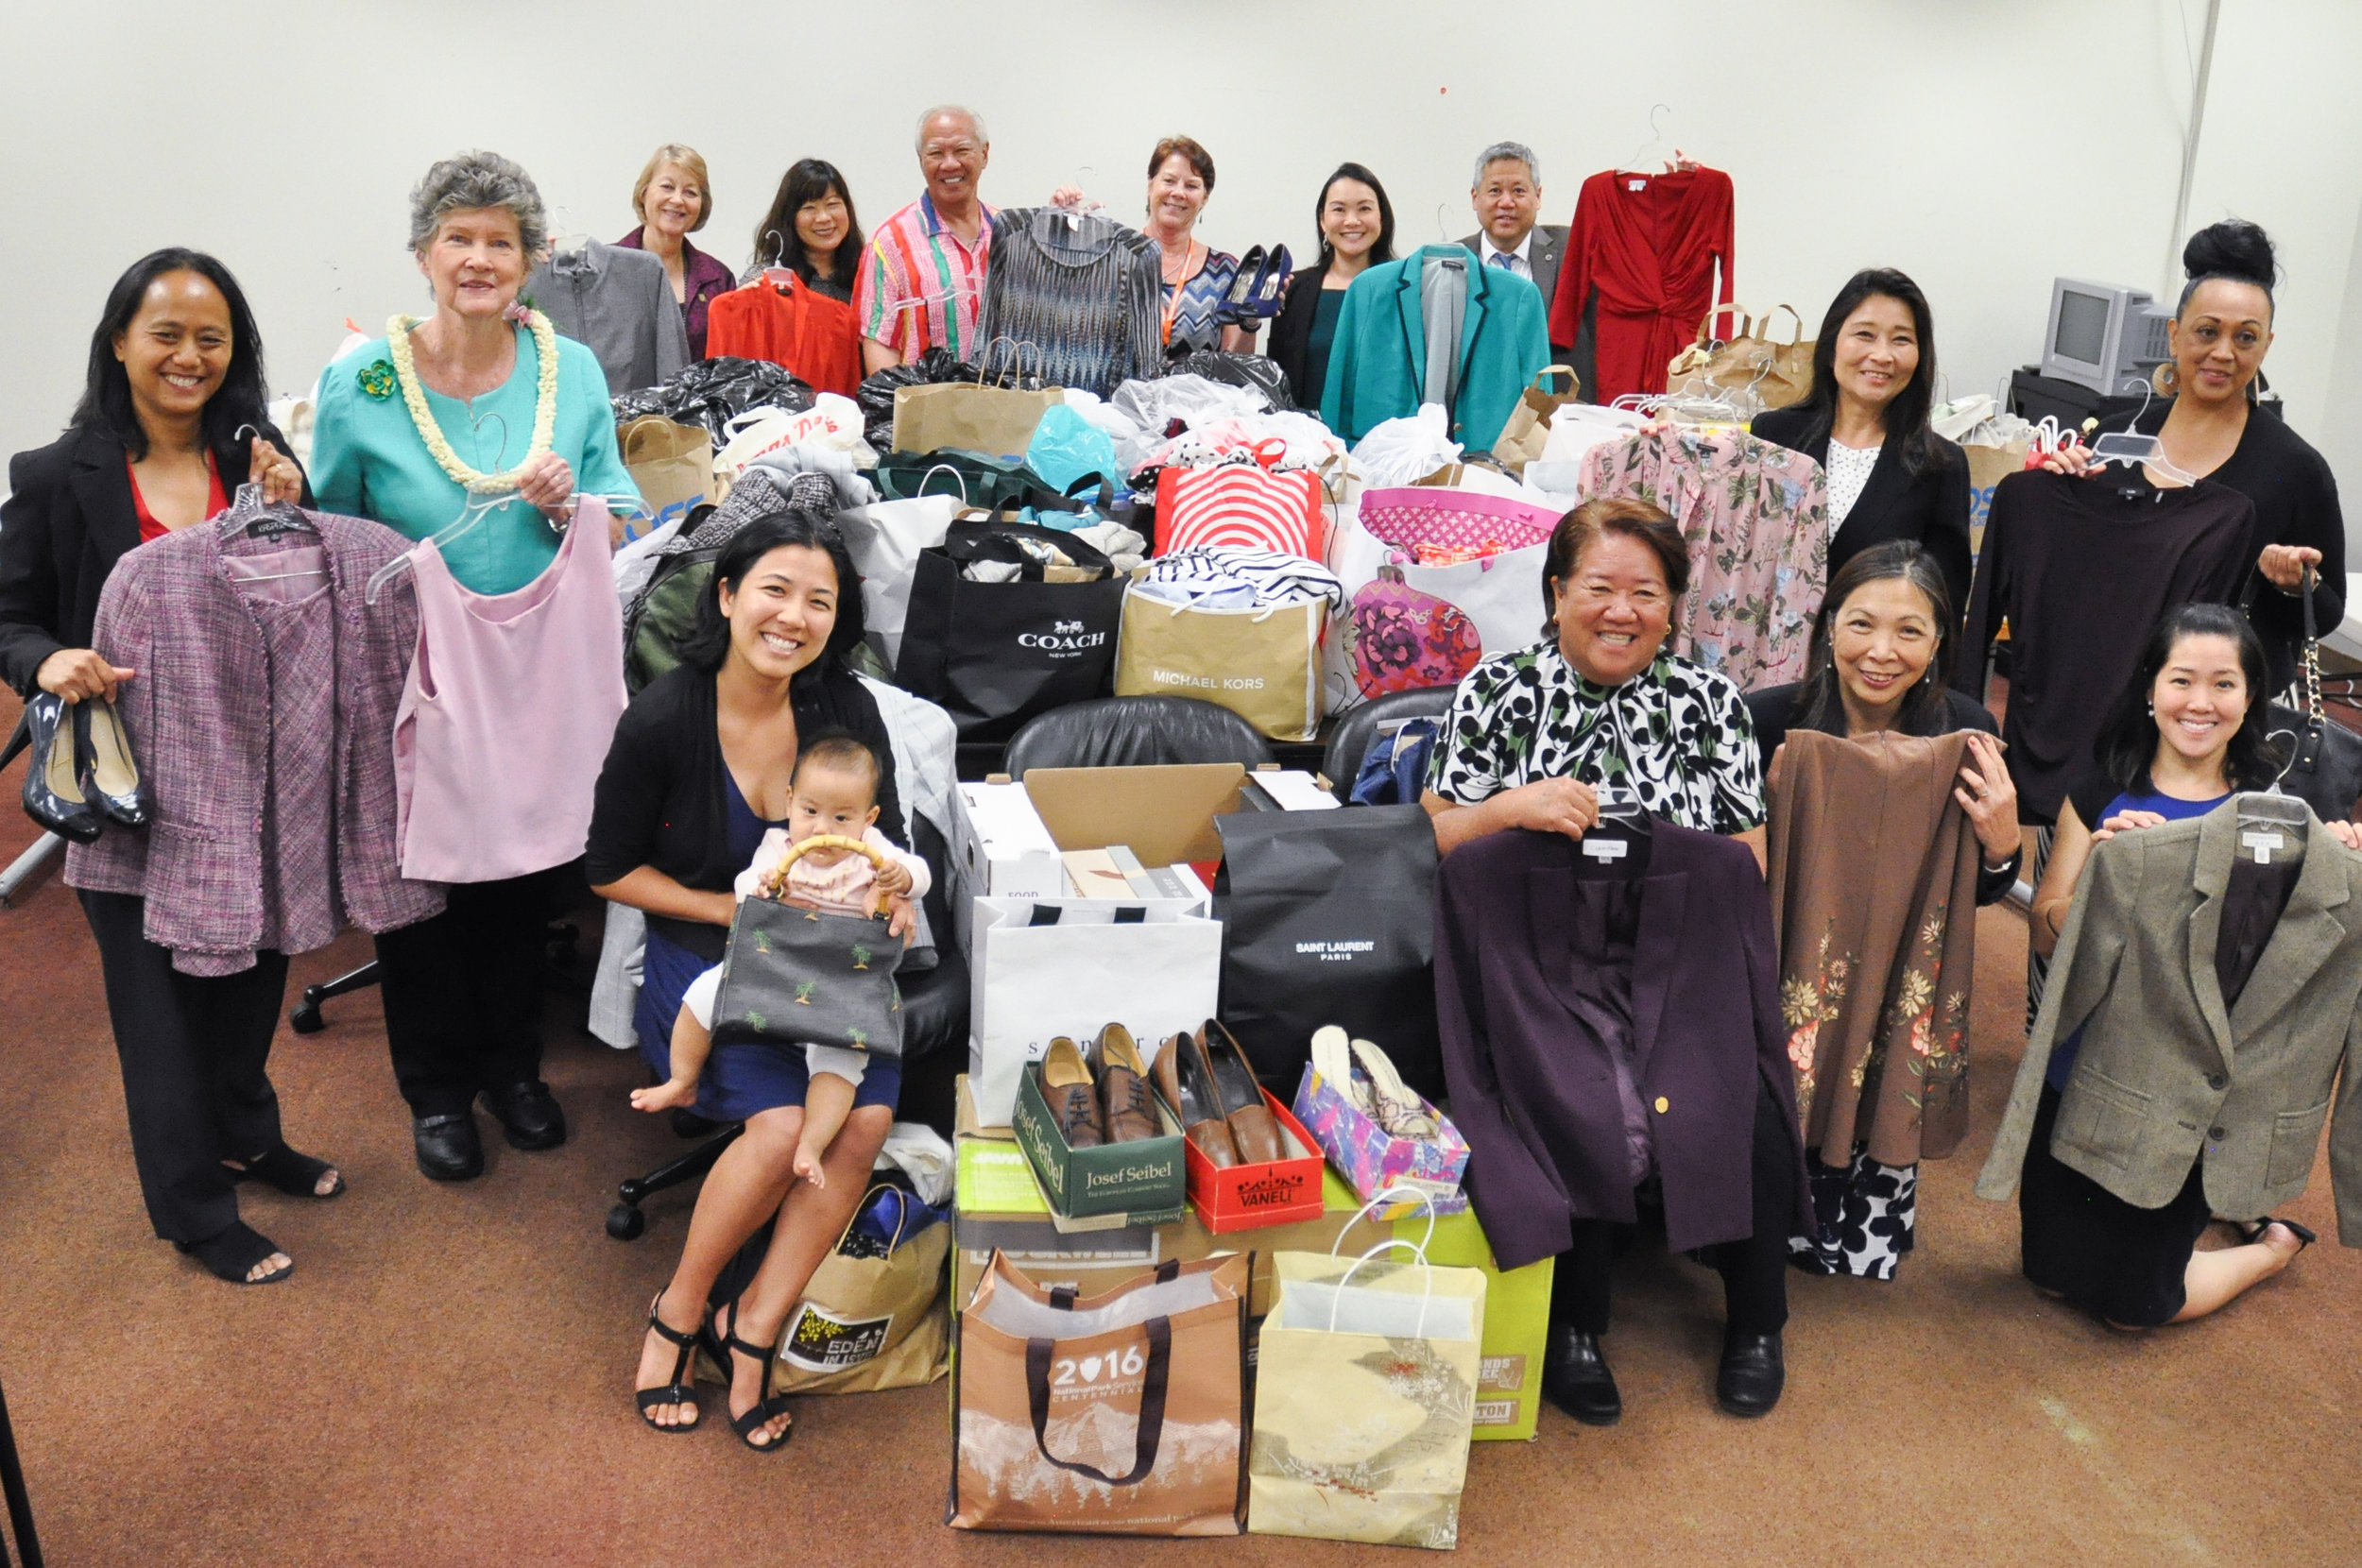 Lawmakers, including members of the Women's Legislative Caucus, collected 432 pounds of gently used professional clothing for the YWCA's Dress for Success program. (Standing, from left) Rep. Della Au Belatti, Rep. Cynthia Thielen, Sen. Rosalyn H. Baker, Rep. Nadine K. Nakamura, Rep. Gregg Takayama, Maryann Bray, YWCA Lead Member Services Associate, Rep. Lisa Kitagawa, House Speaker Scott K. Saiki, Rep. Sylvia Luke, Kepola Dudoit, YWCA resident artist, (seated from left) Rep. Linda Ichiyama (with baby Emily), Rep. Dee Morikawa, Rep. Joy San Buenaventura, and Cecilia Fong, the YWCA Director of Fund Development.